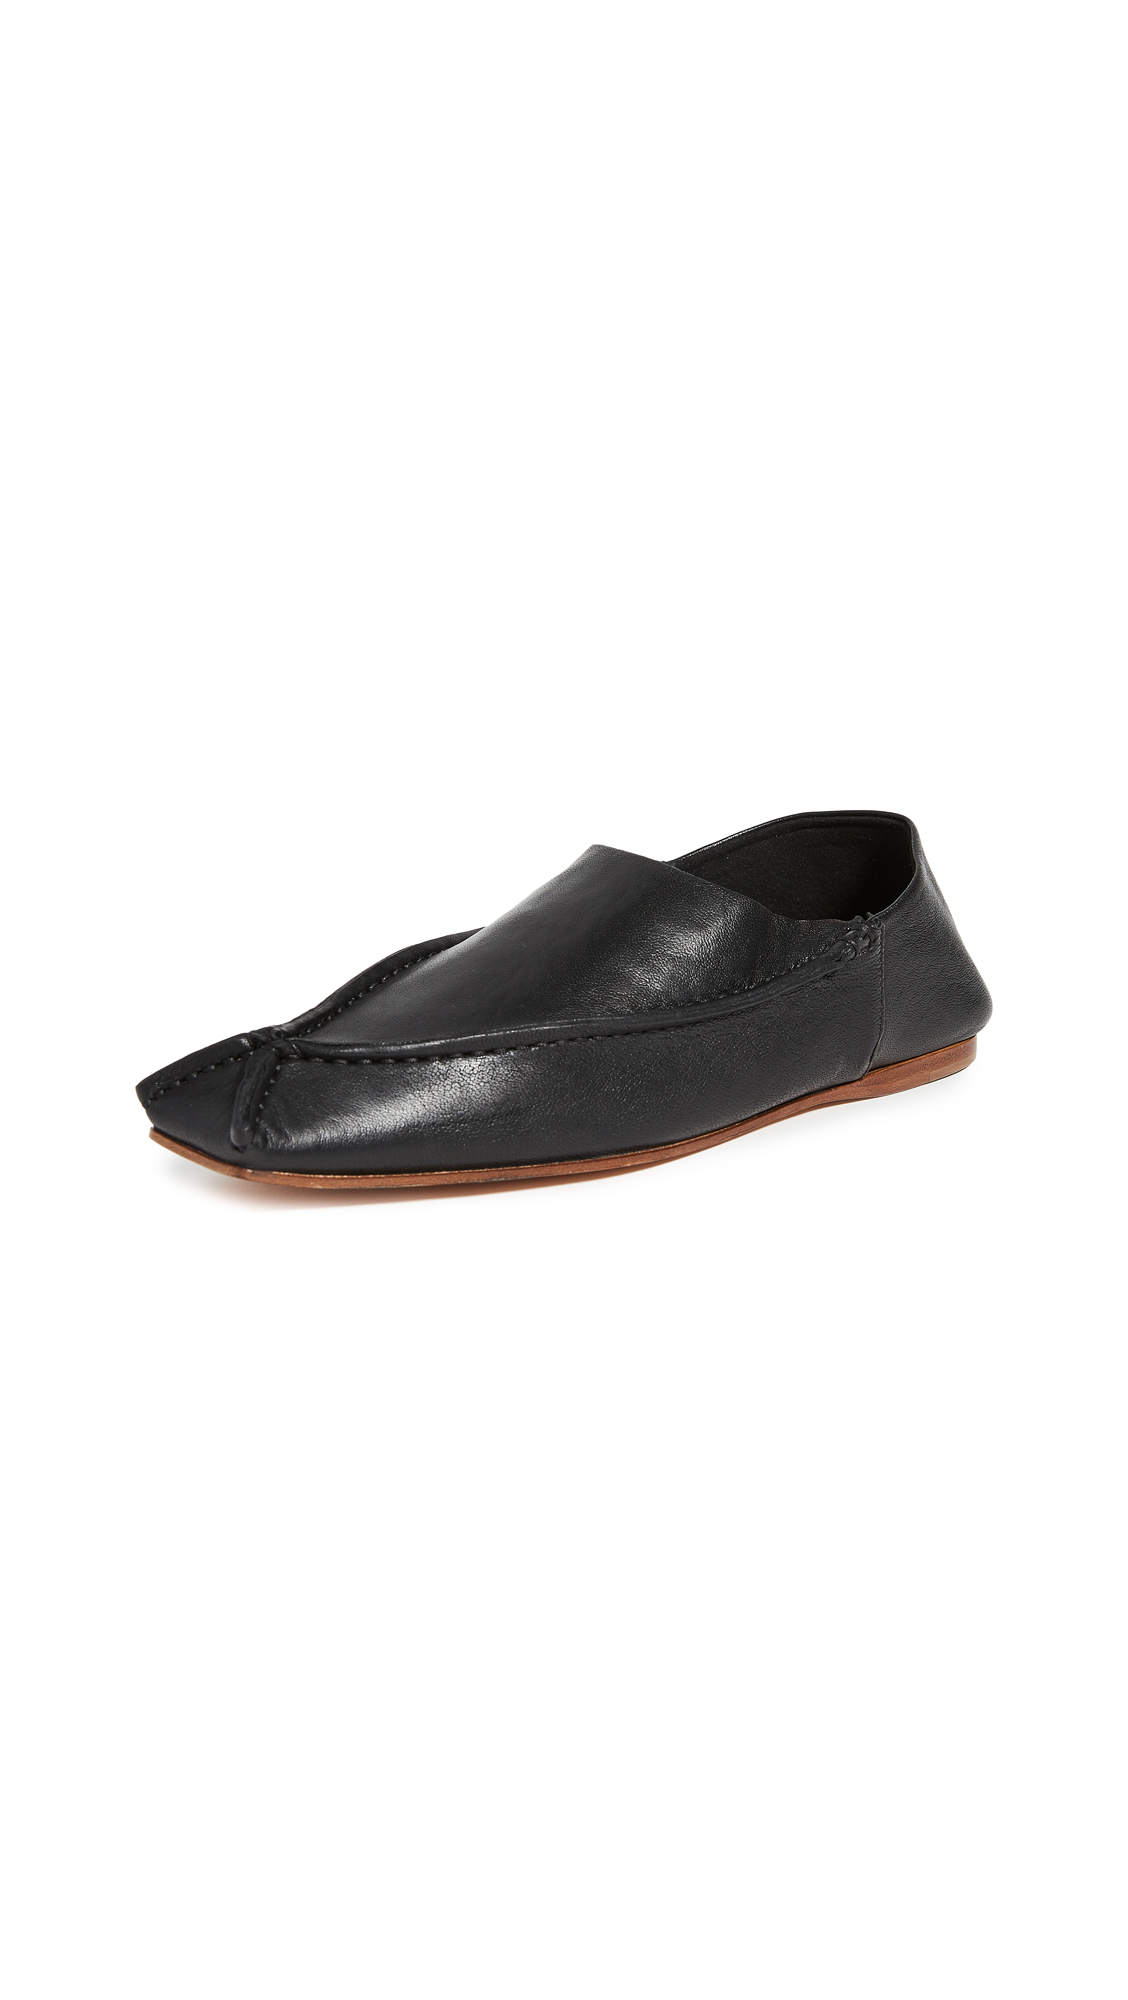 Acne Studios Leather Flats